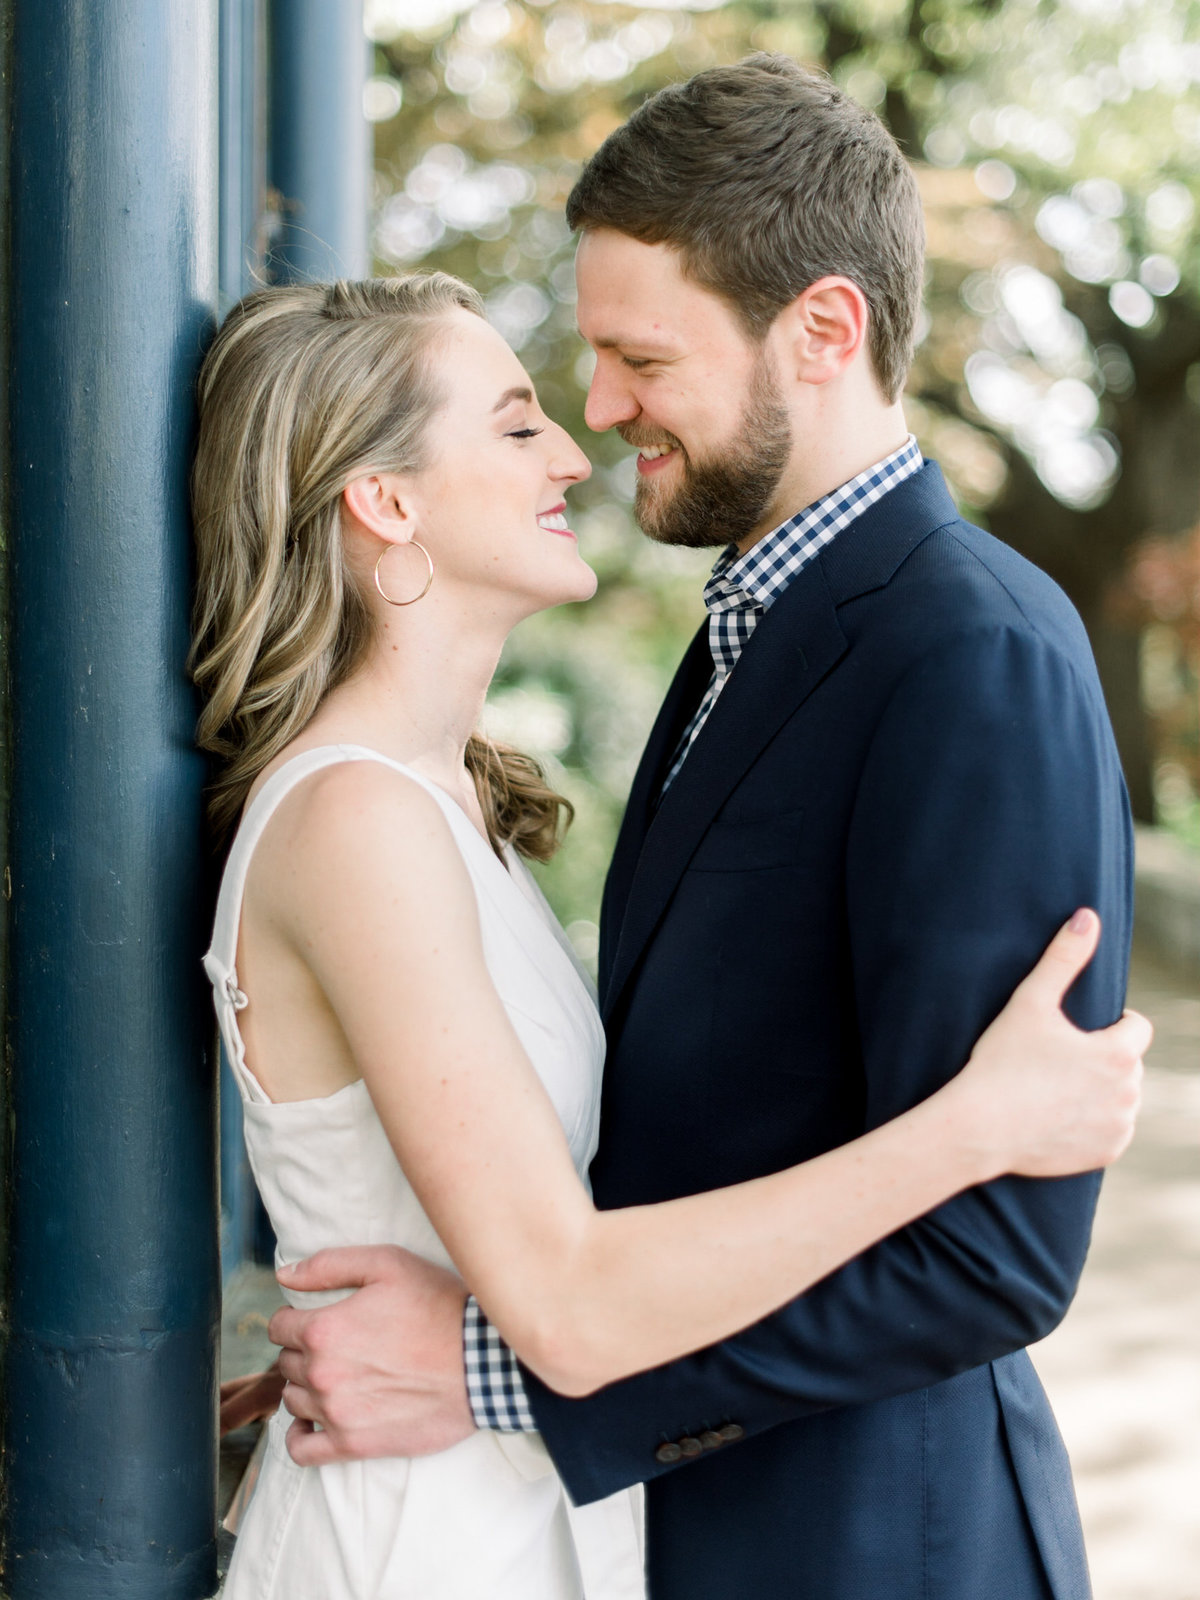 Courtney Hanson Photography - Dallas Spring Engagement Photos at Dallas Arboretum-2720